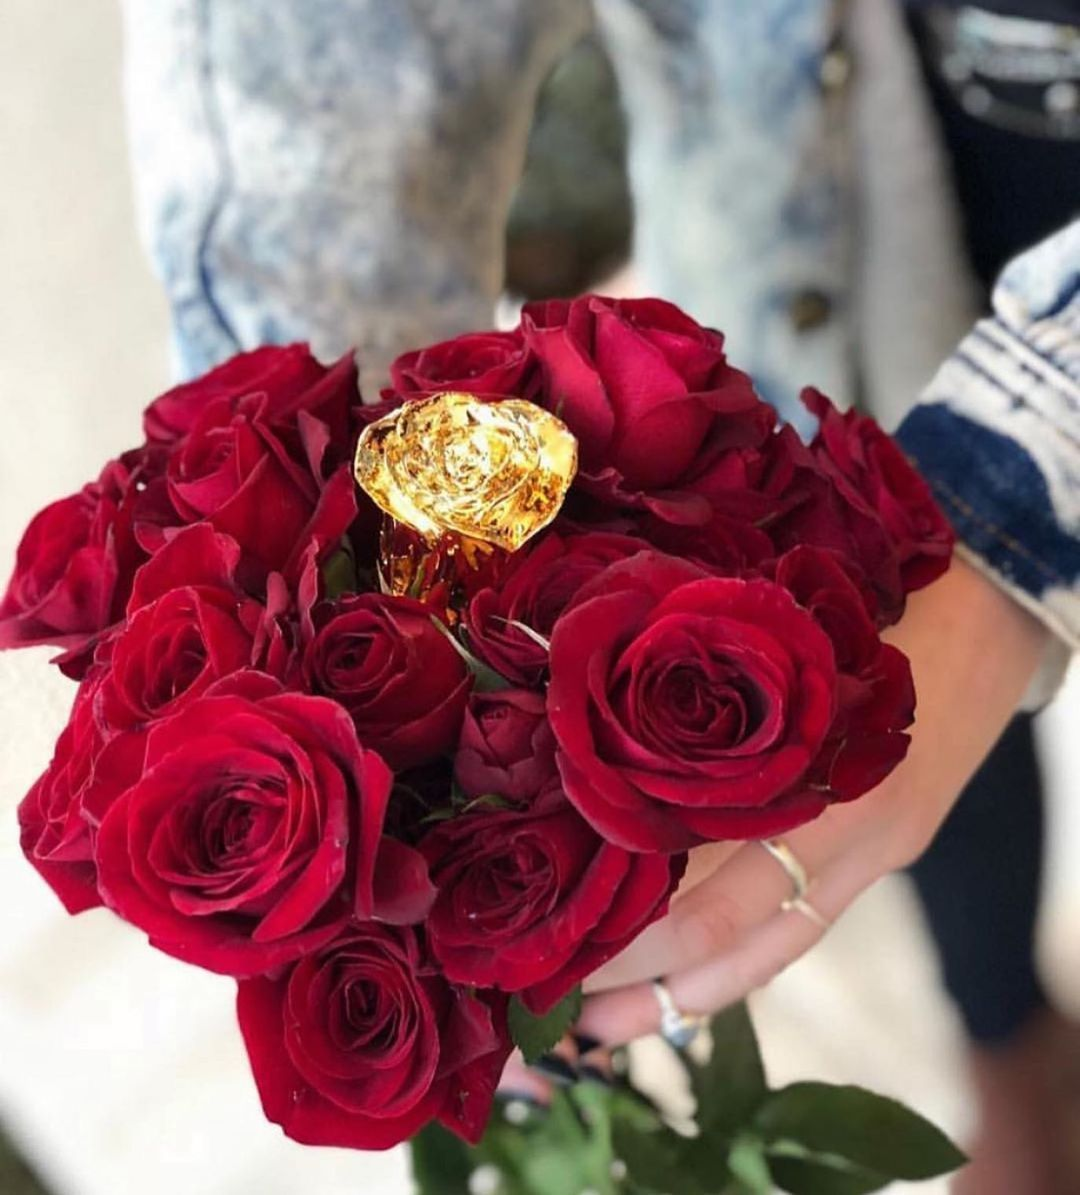 Higomore™ 24K Gold Rose Never wither-Eternal love